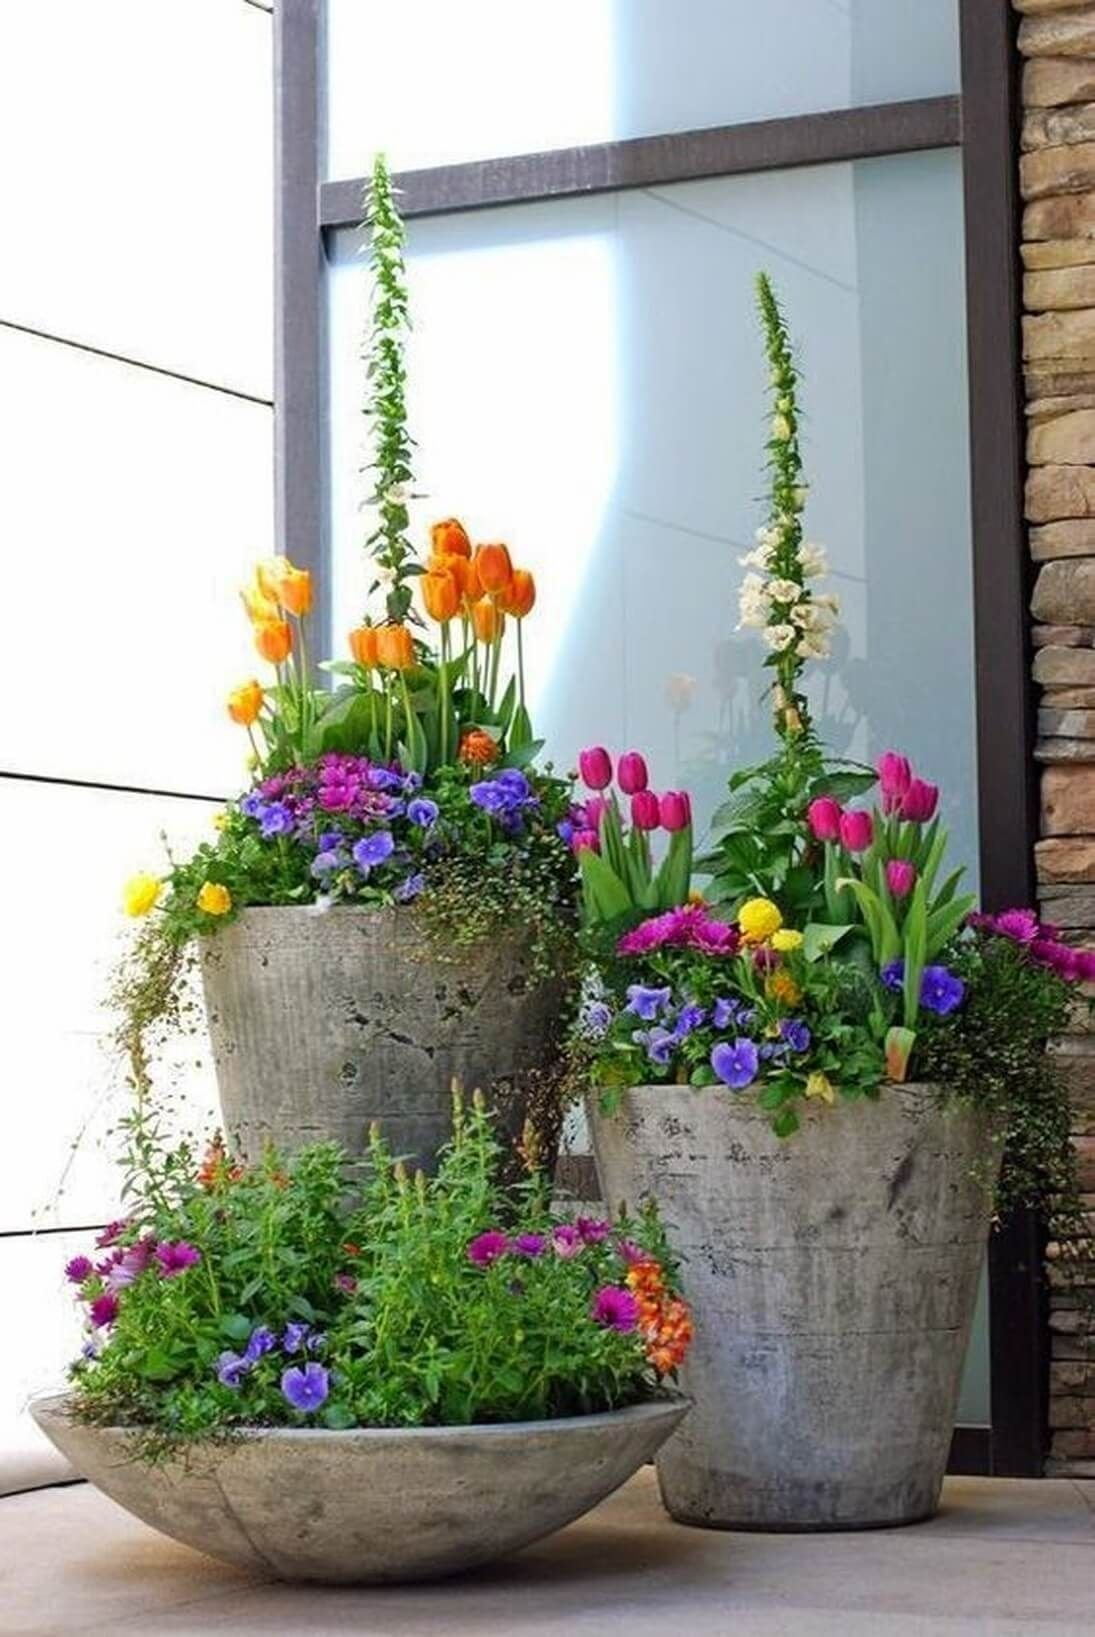 10 Awesome Planter Ideas For Front Porch 29 pretty front door flower pots that will add personality to your 2021